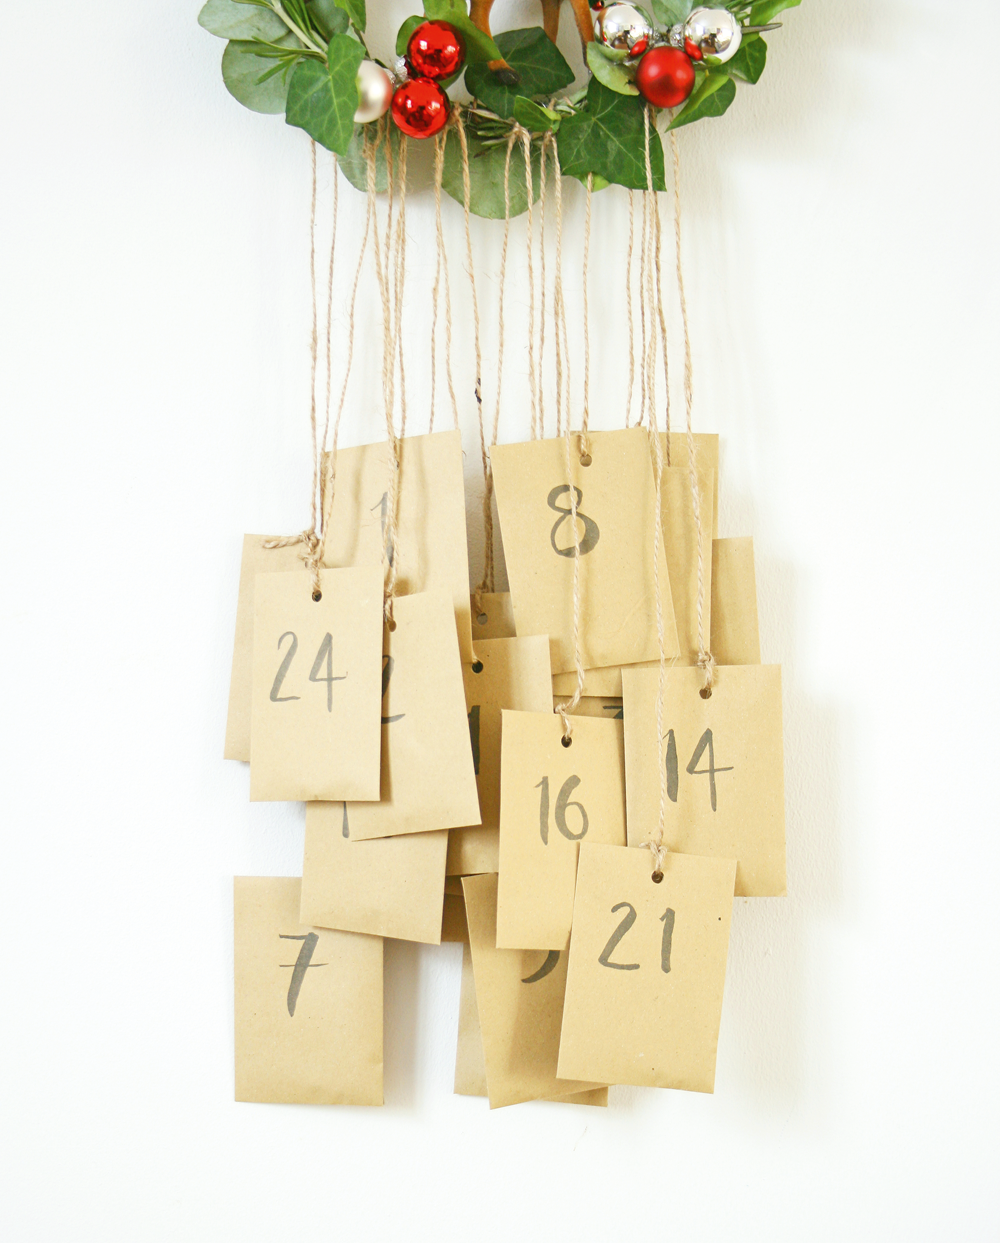 Carefully hang your advent calendar in its final position and let the countdown begin.